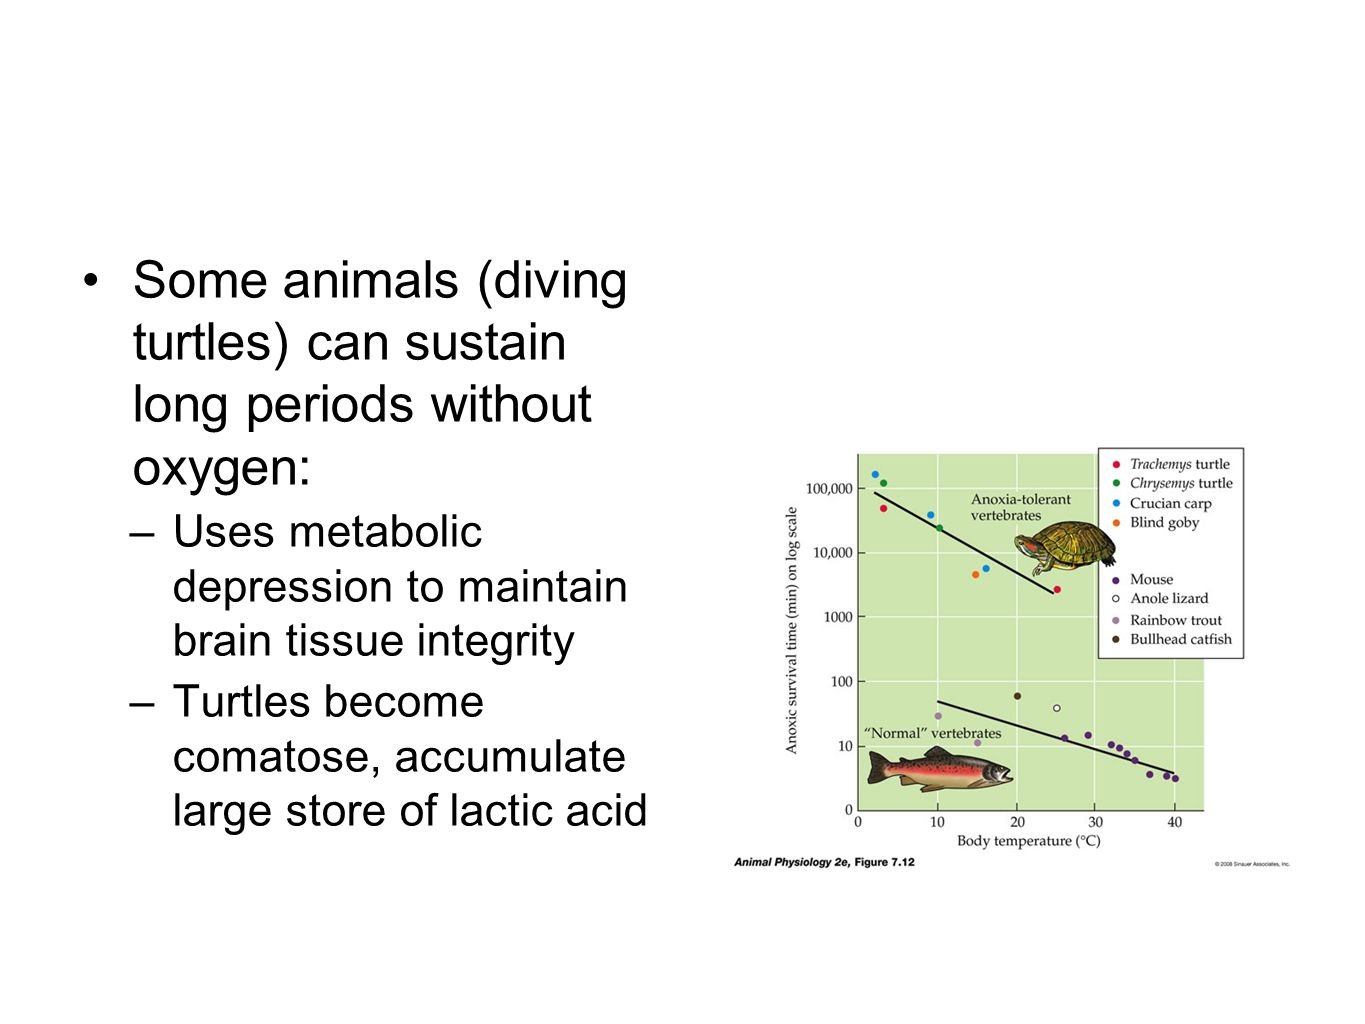 Some animals (diving turtles) can sustain long periods without oxygen: